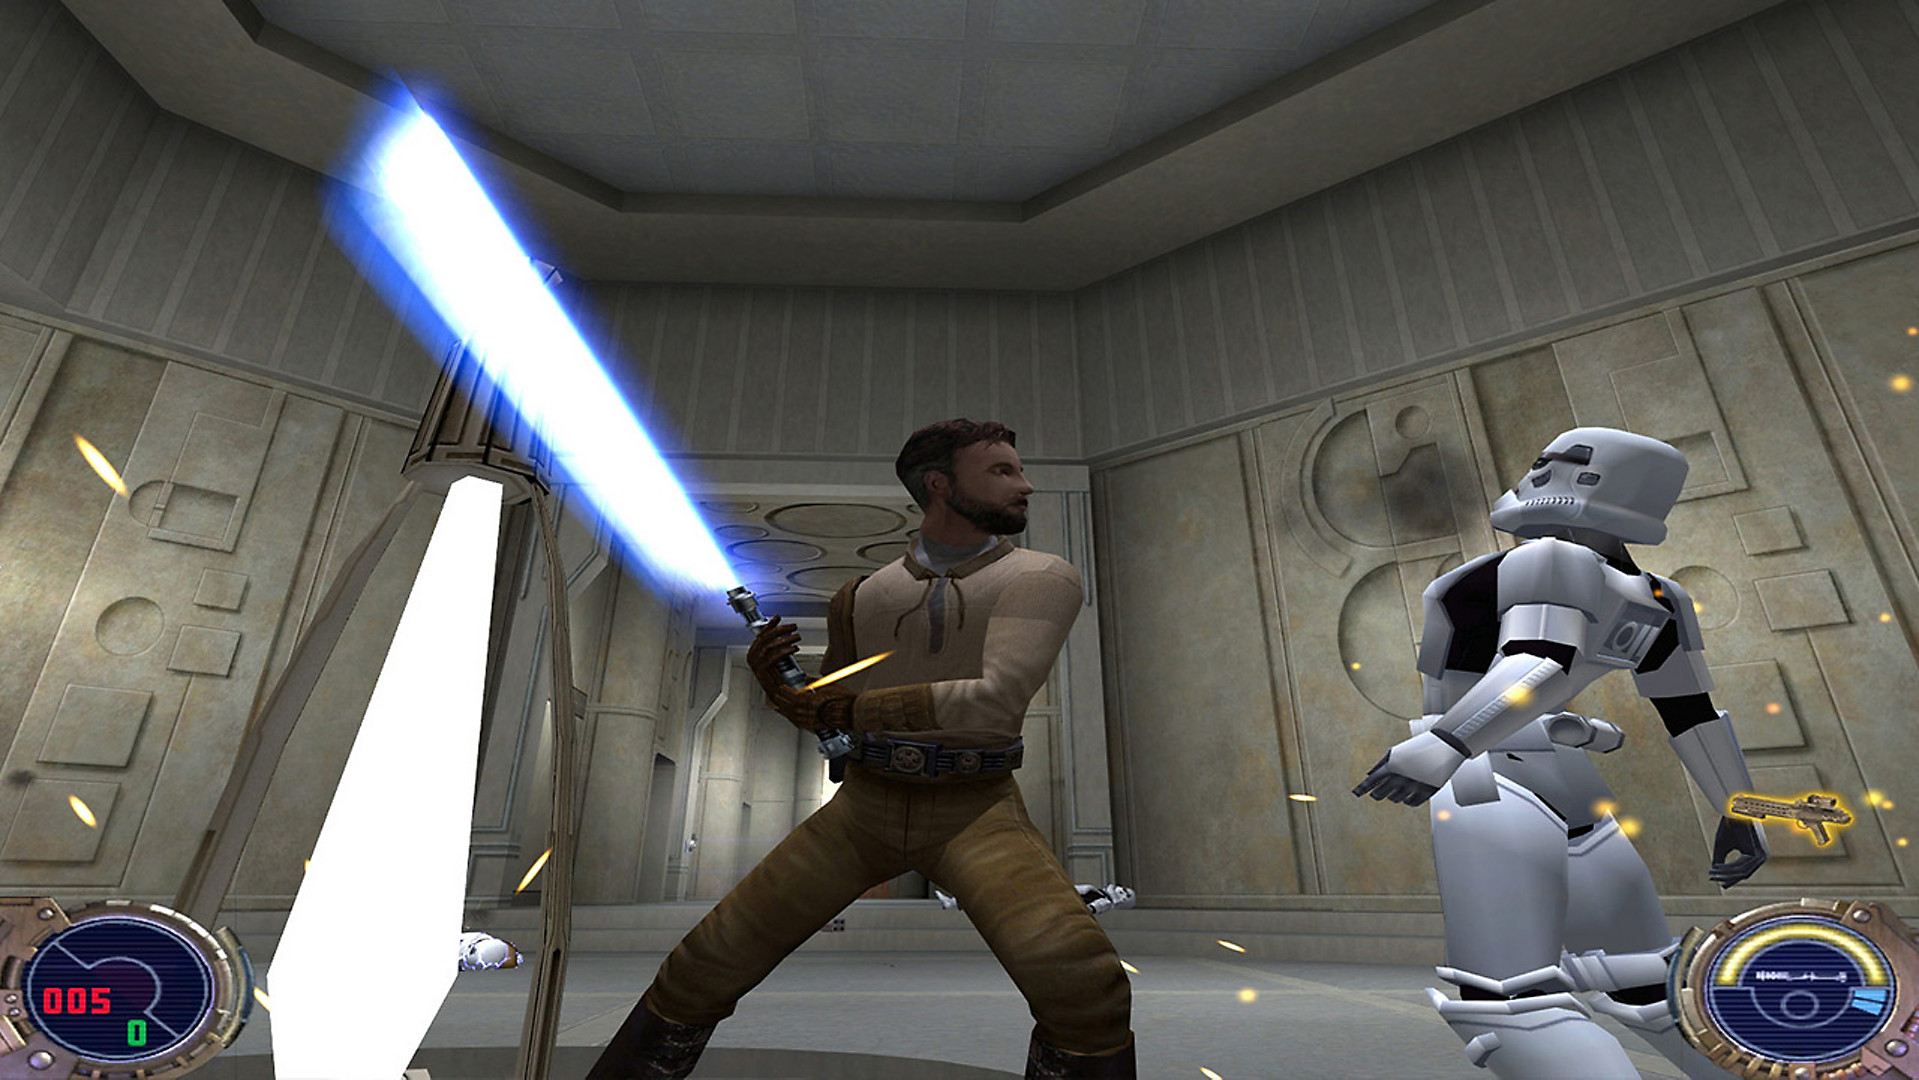 Classic Star Wars games release today